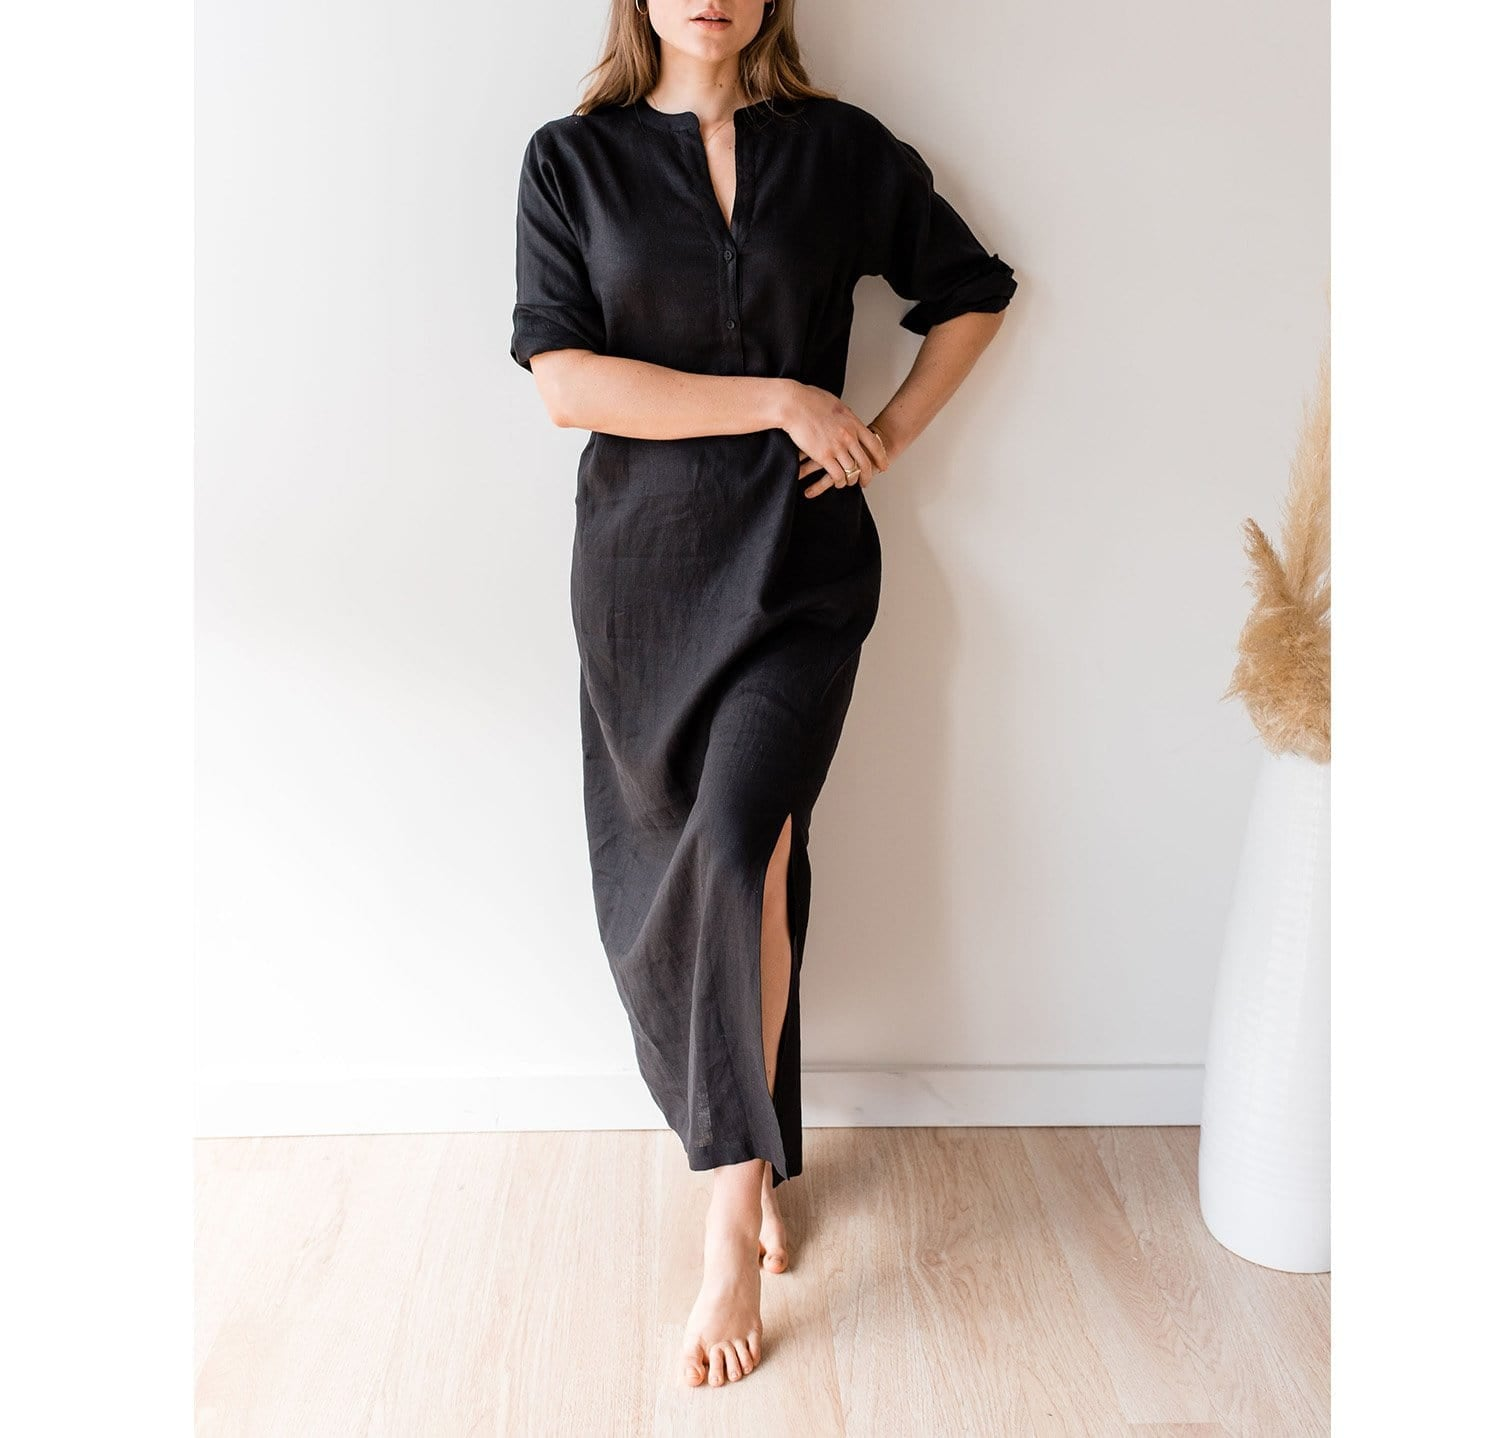 The Popover Dress